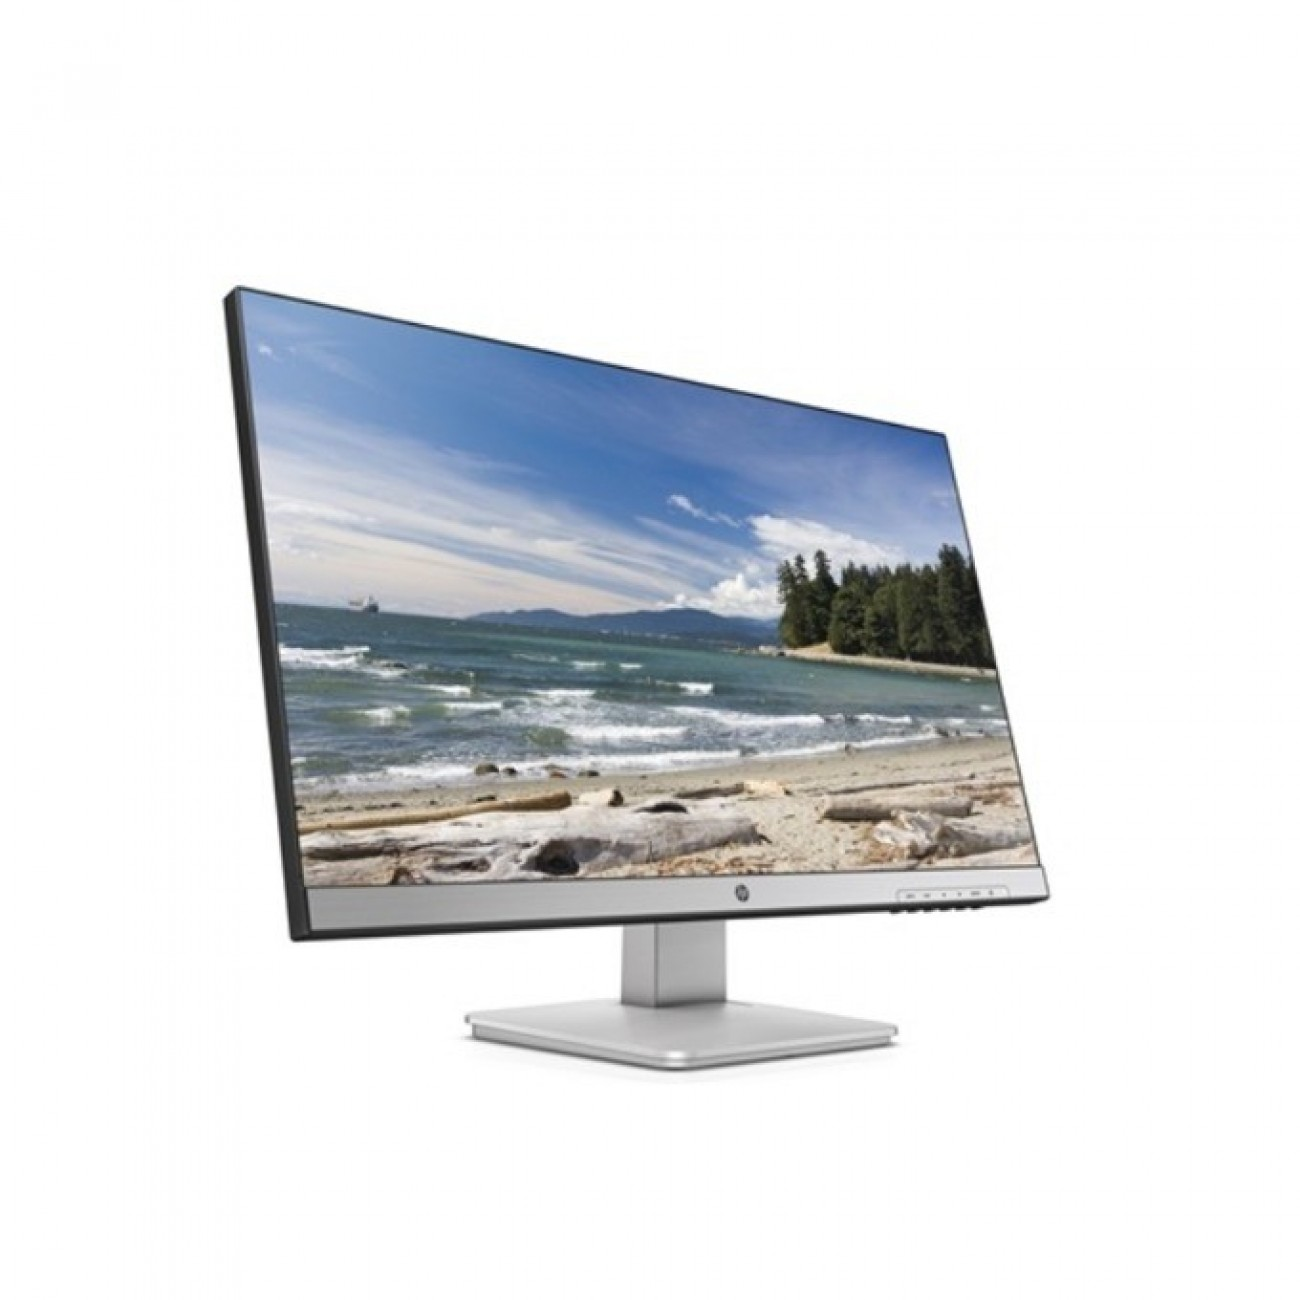 Монитор HP 27q (3FV90AA), 27 (68.58 cm) TN панел, QHD, 2 ms, 10 000 000:1, 350 cd/m2, DisplayPort, HDMI в Монитори -  | Alleop